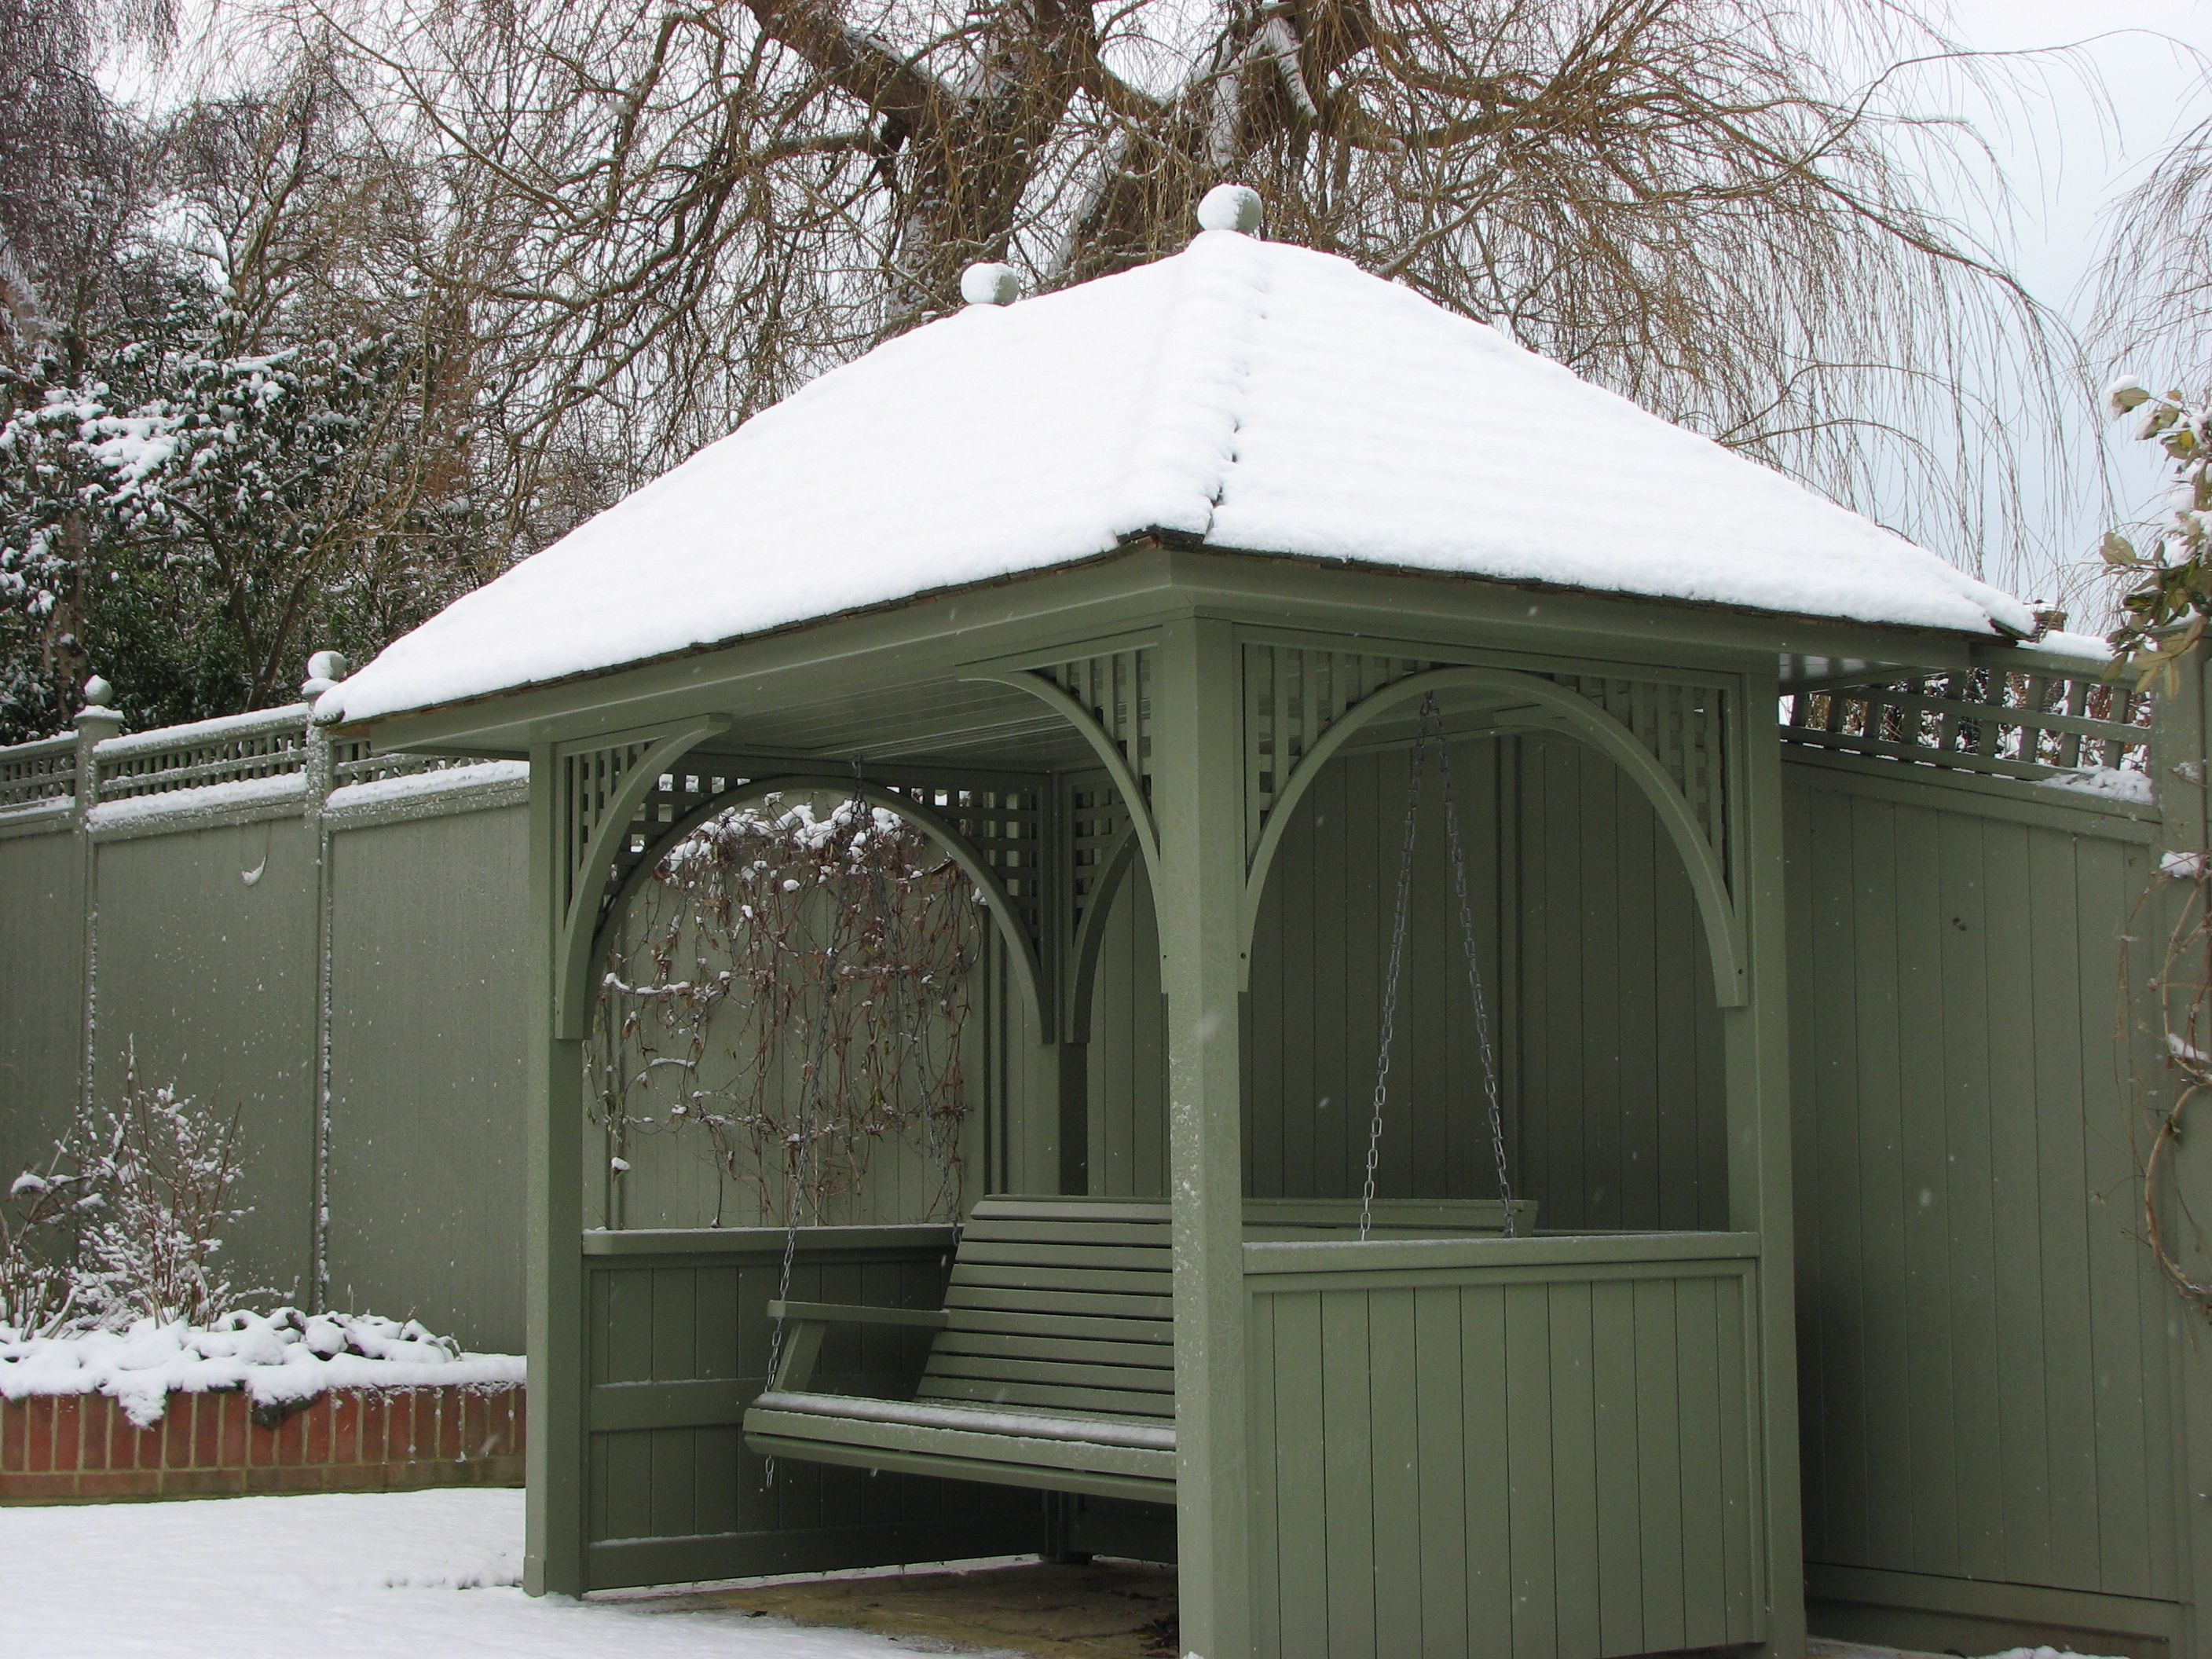 painted seating arbour perfect in any weather garden trellis painted seating arbour perfect in any weather garden trellis company